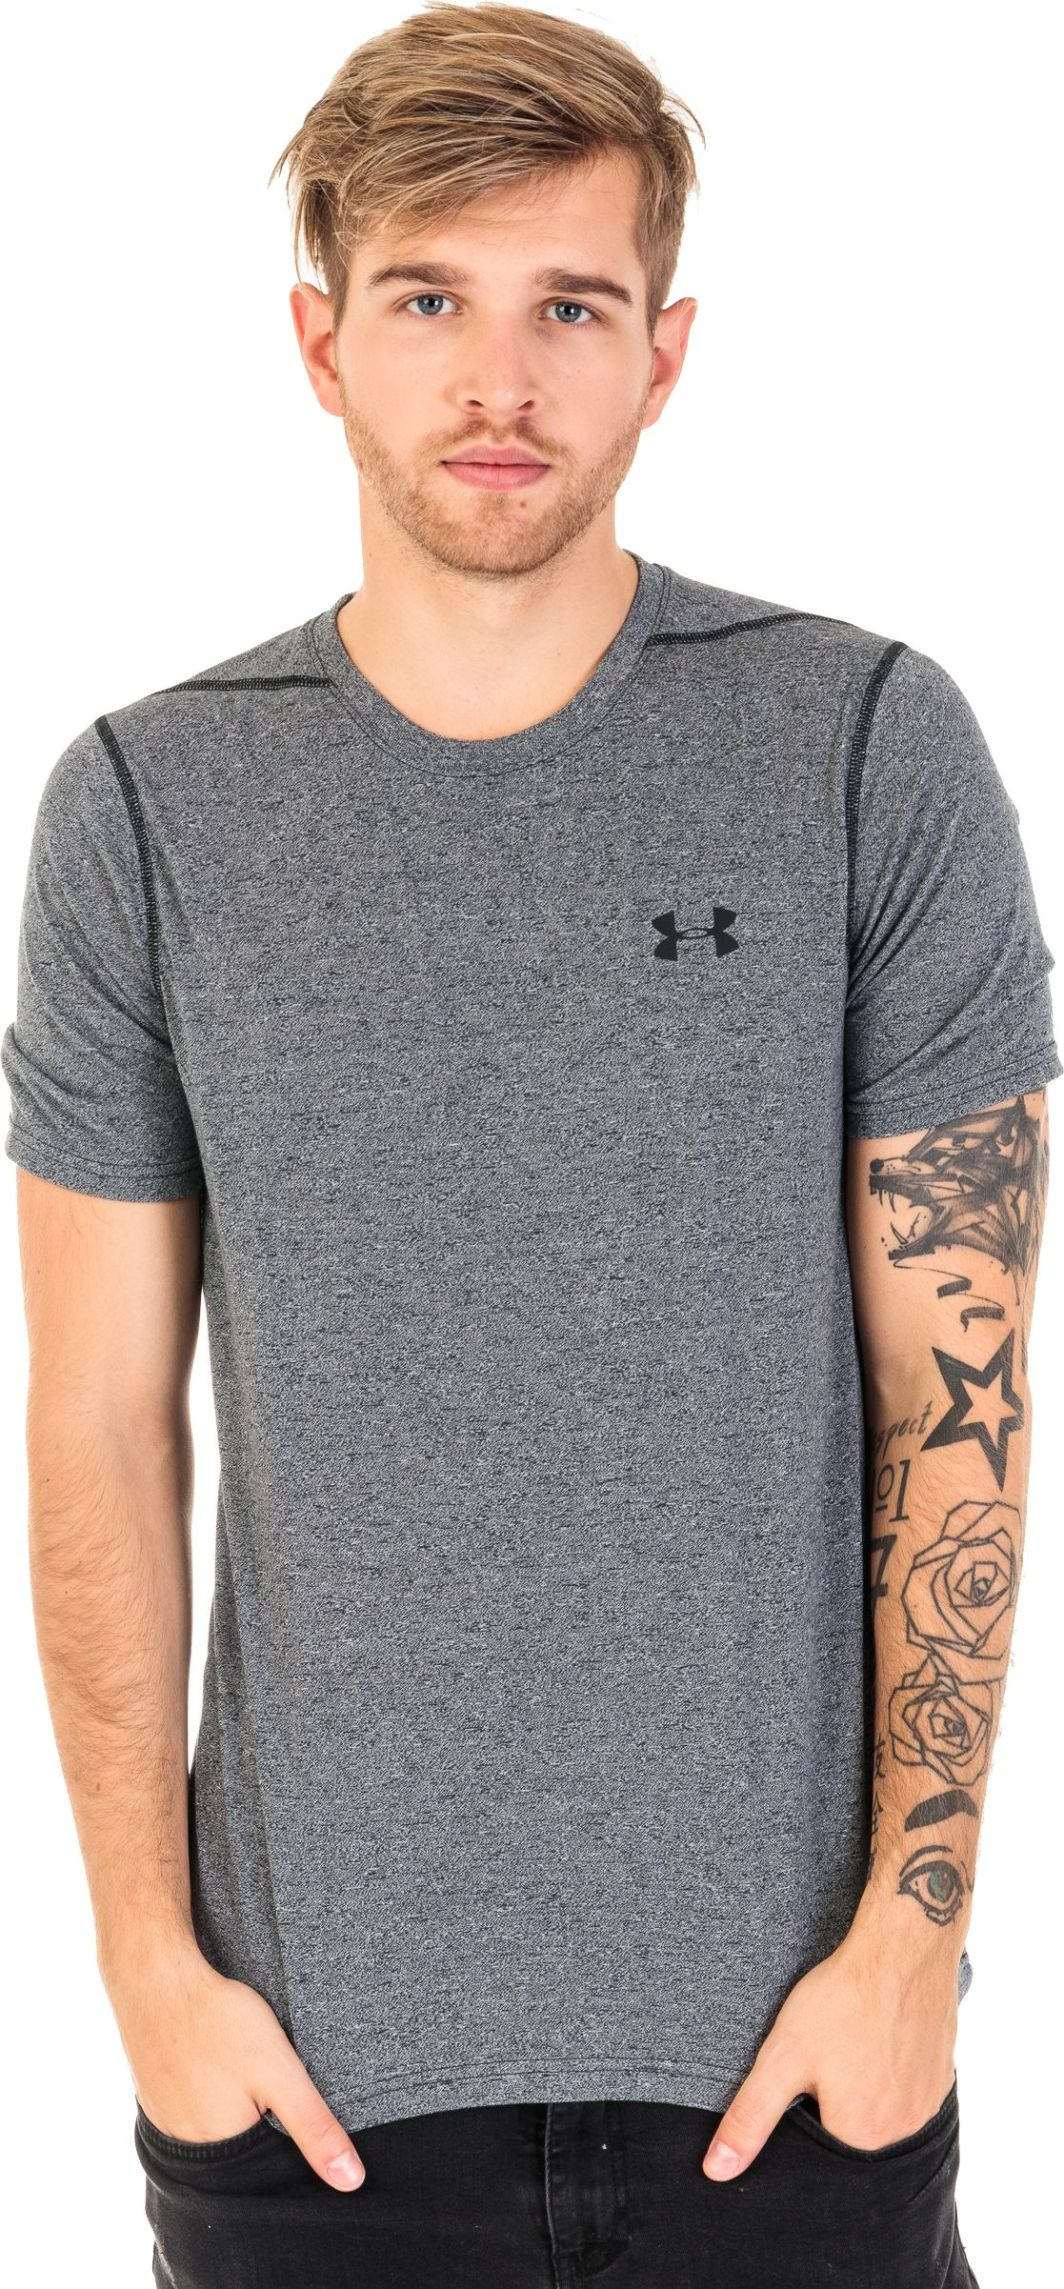 Under Armour Koszulka męska Threadborne T-Shirt Black/Graphite r. L (1289588006) 1